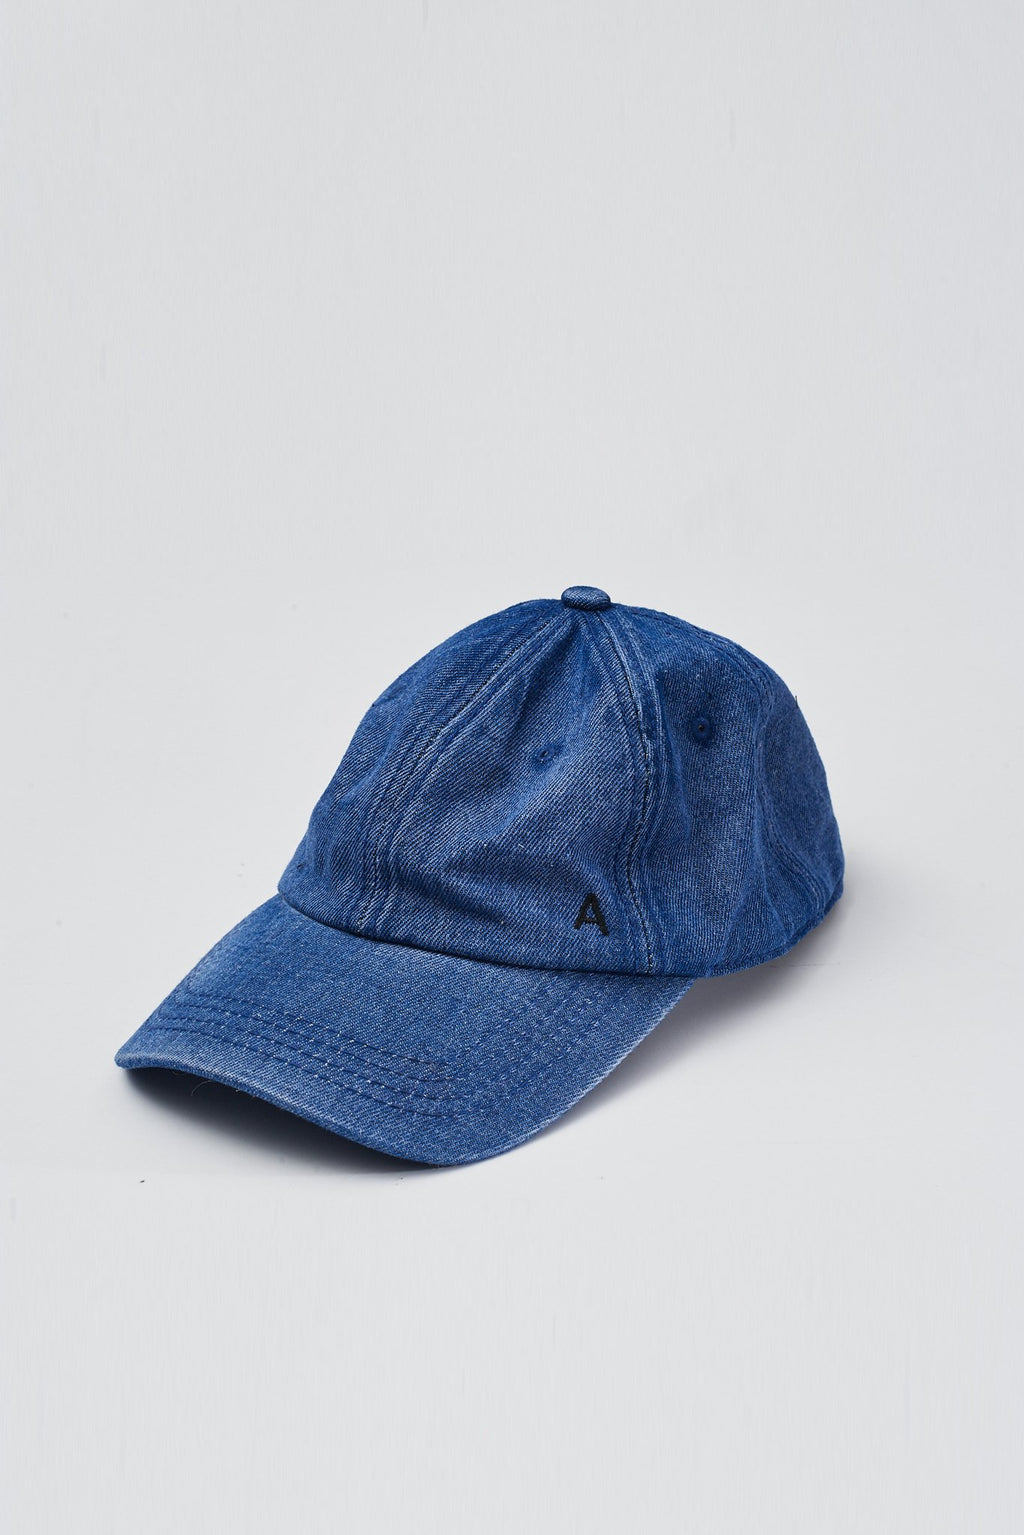 Dark Washed Denim Monogram Hat